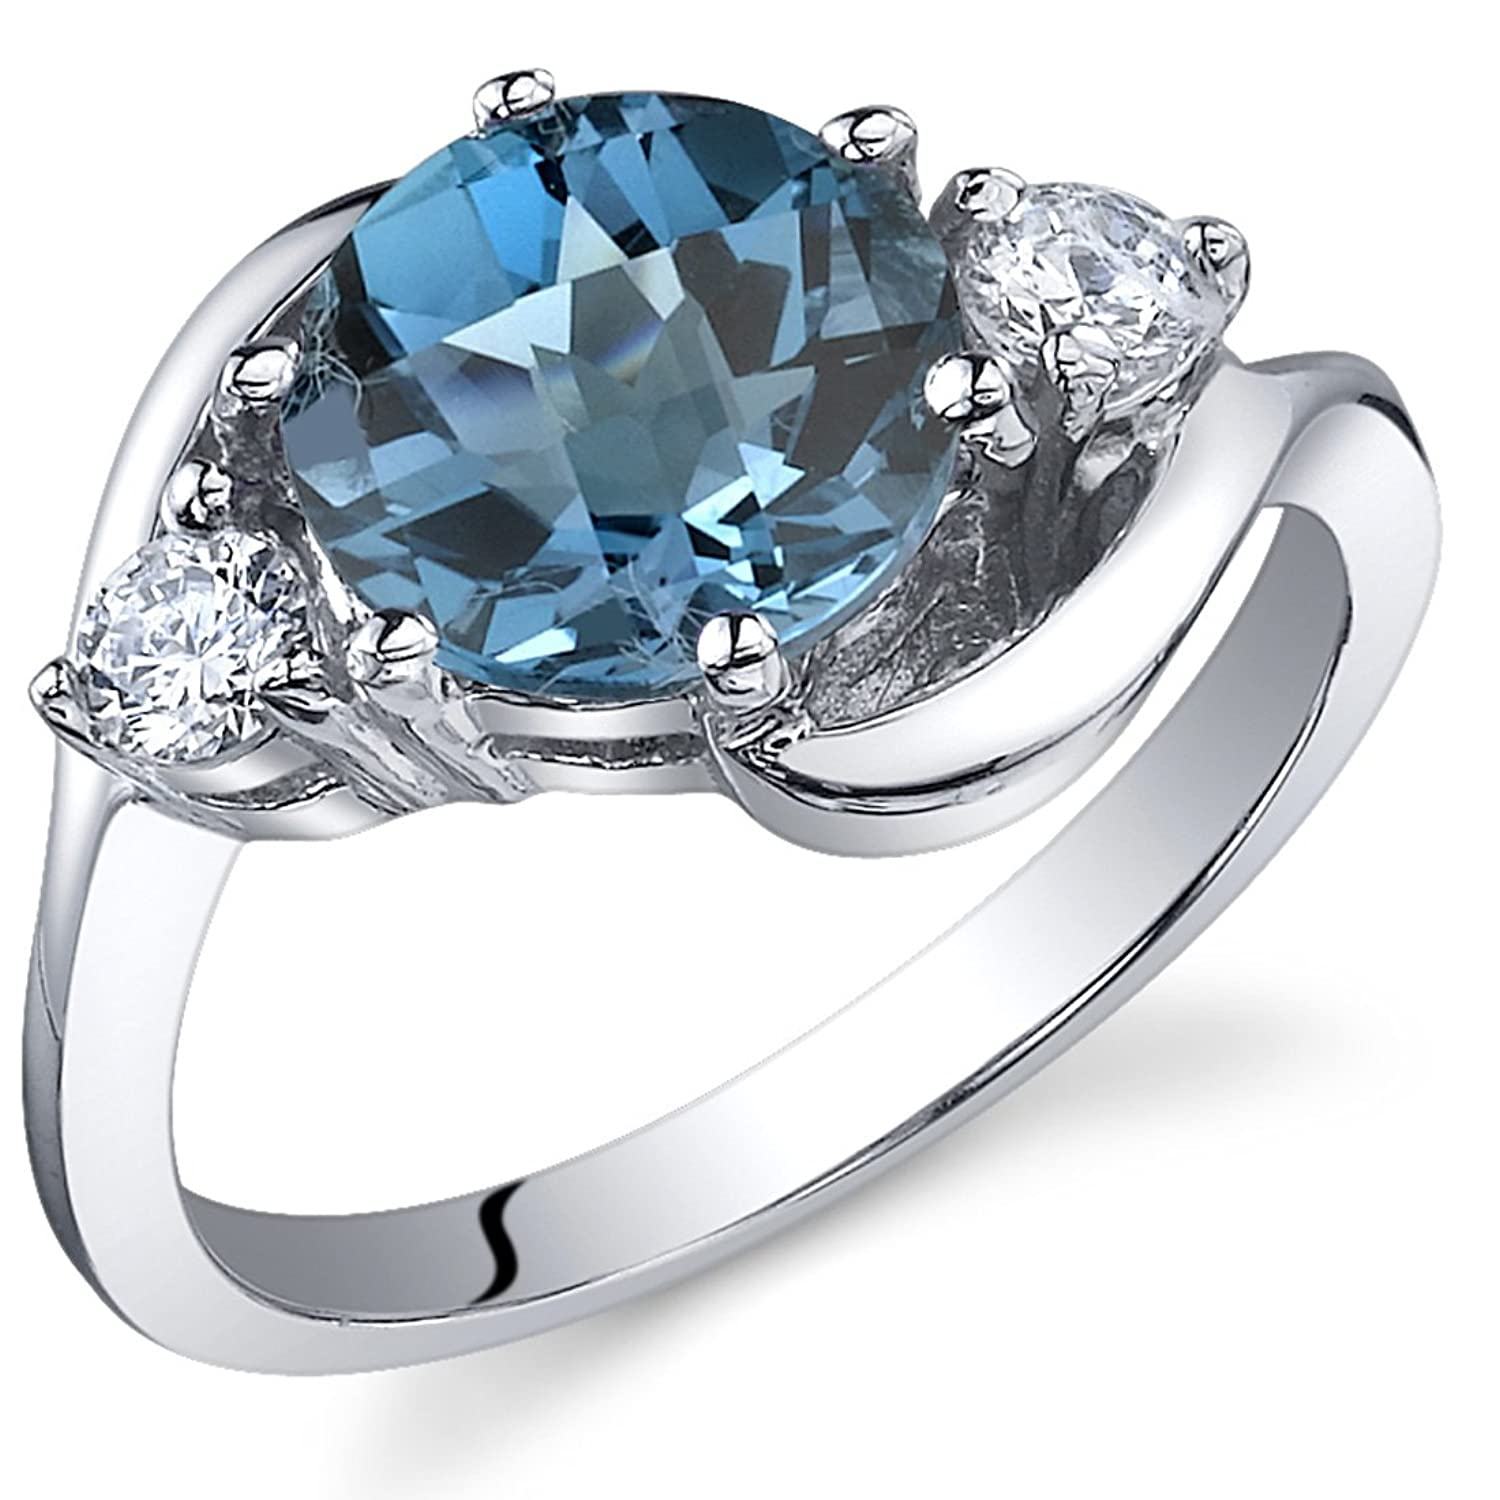 wedding sapphire diamonds kimvskaterings ring middlteon kim to tag rings kate watches and kardashian how raton engagement royal boca blue sell jewelry